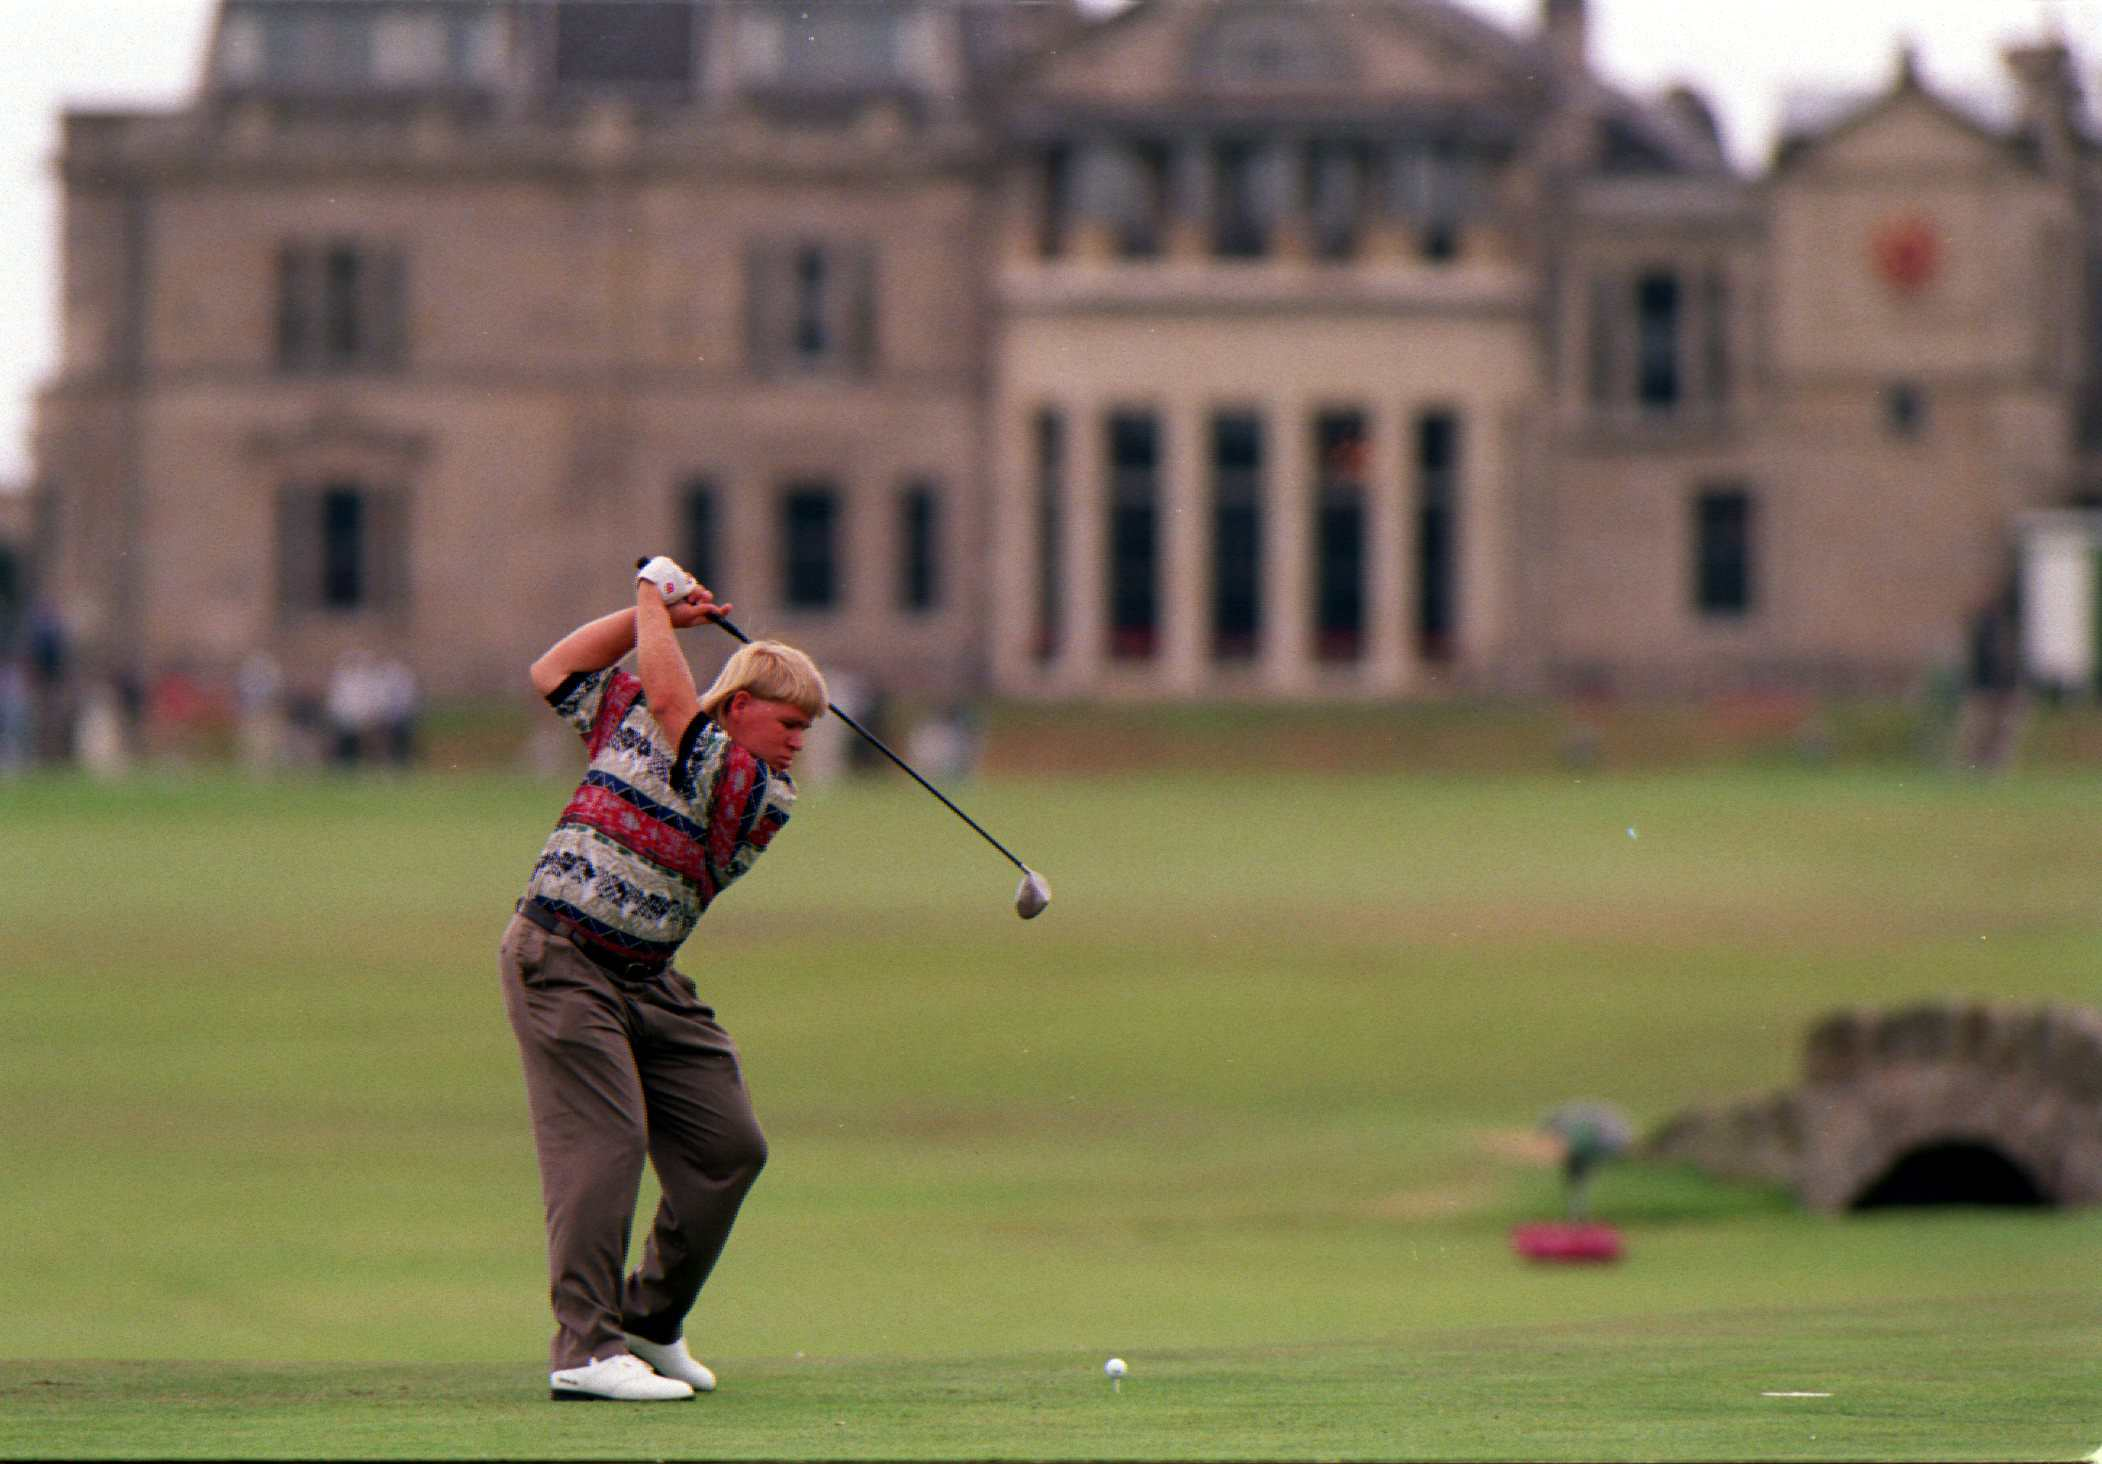 John Daly tees off No. 18 at St. Andrews during the 1995 British Open